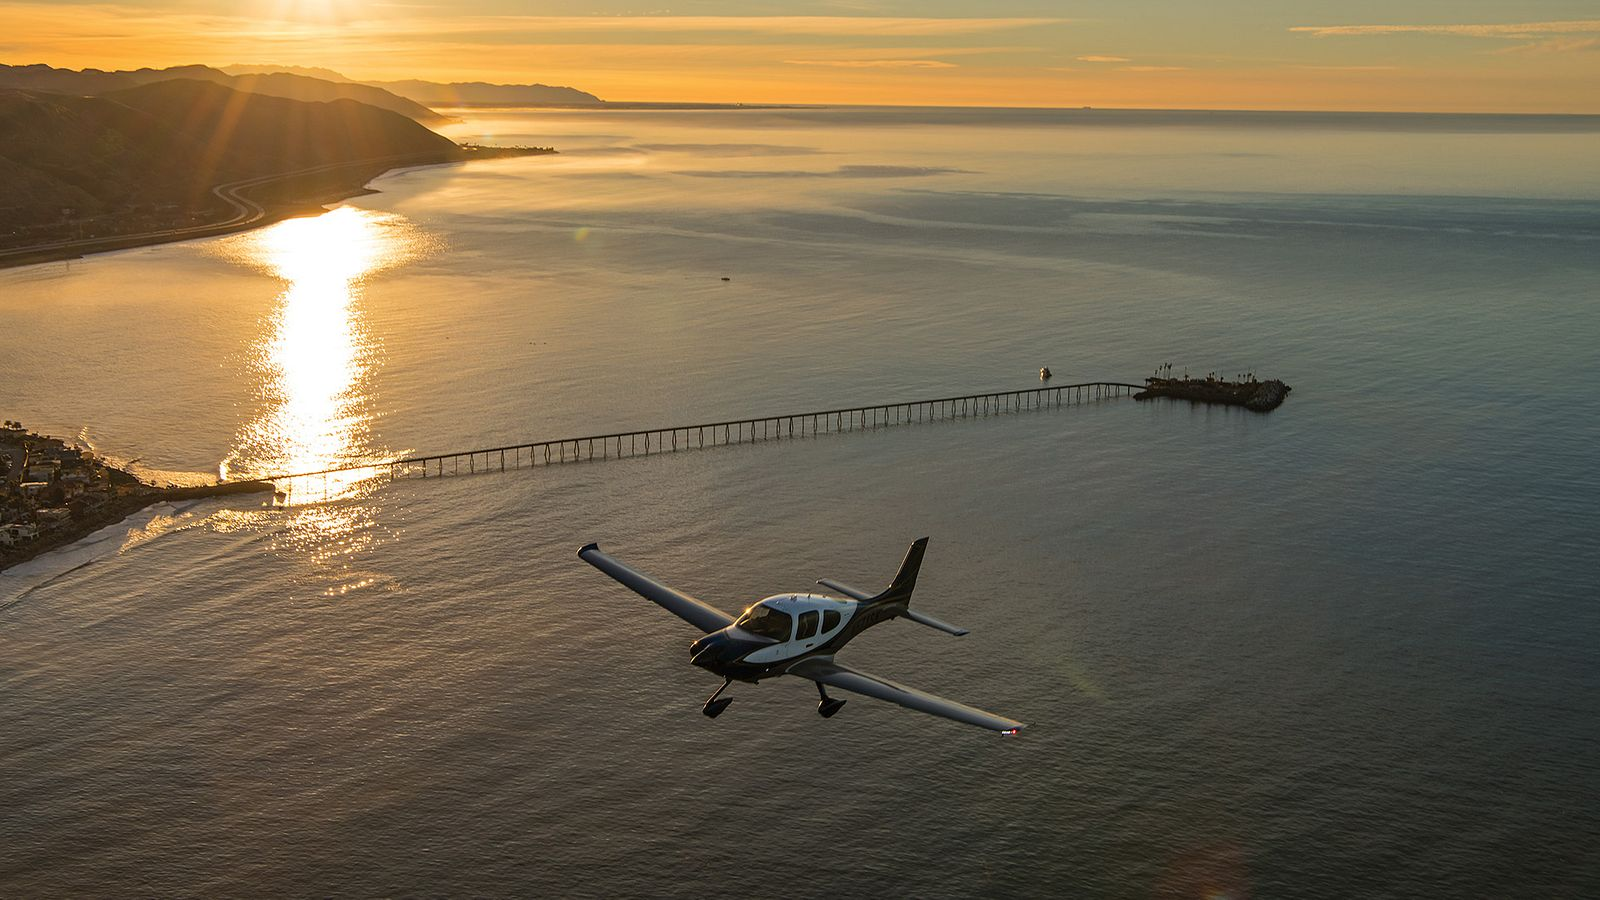 A Cirrus SR-22 is pictured flying mid-air against a Southern California Beach sunset, with a nearby boardwalk.